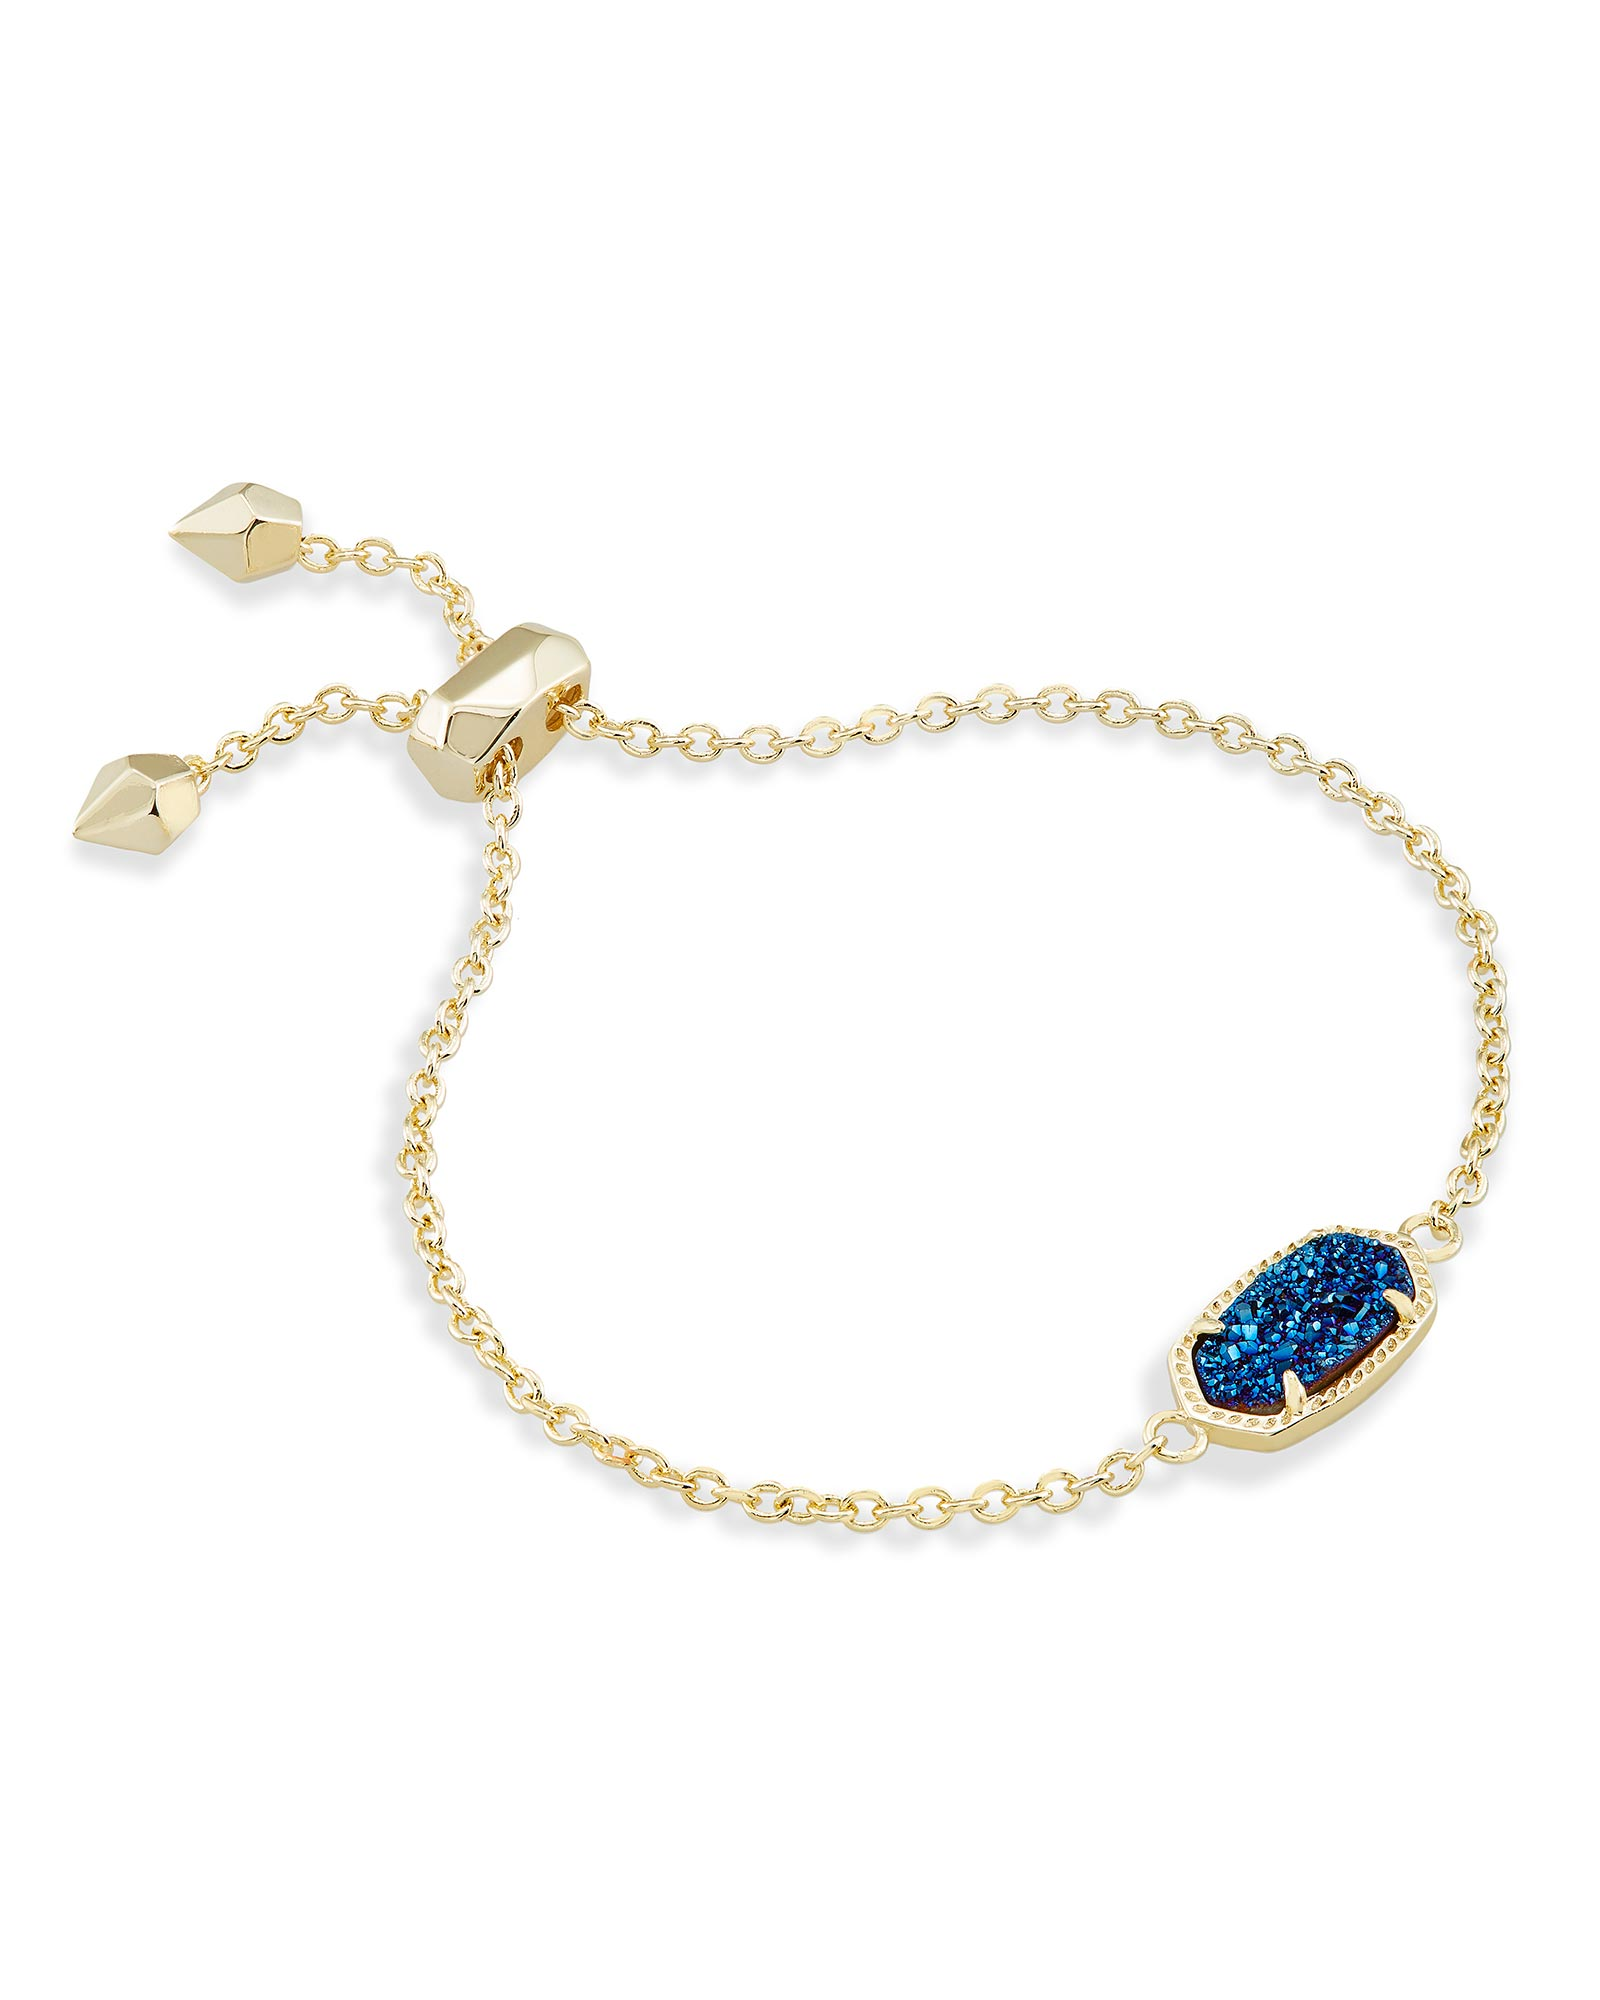 Elaina Adjustable Chain Bracelet in Blue Drusy